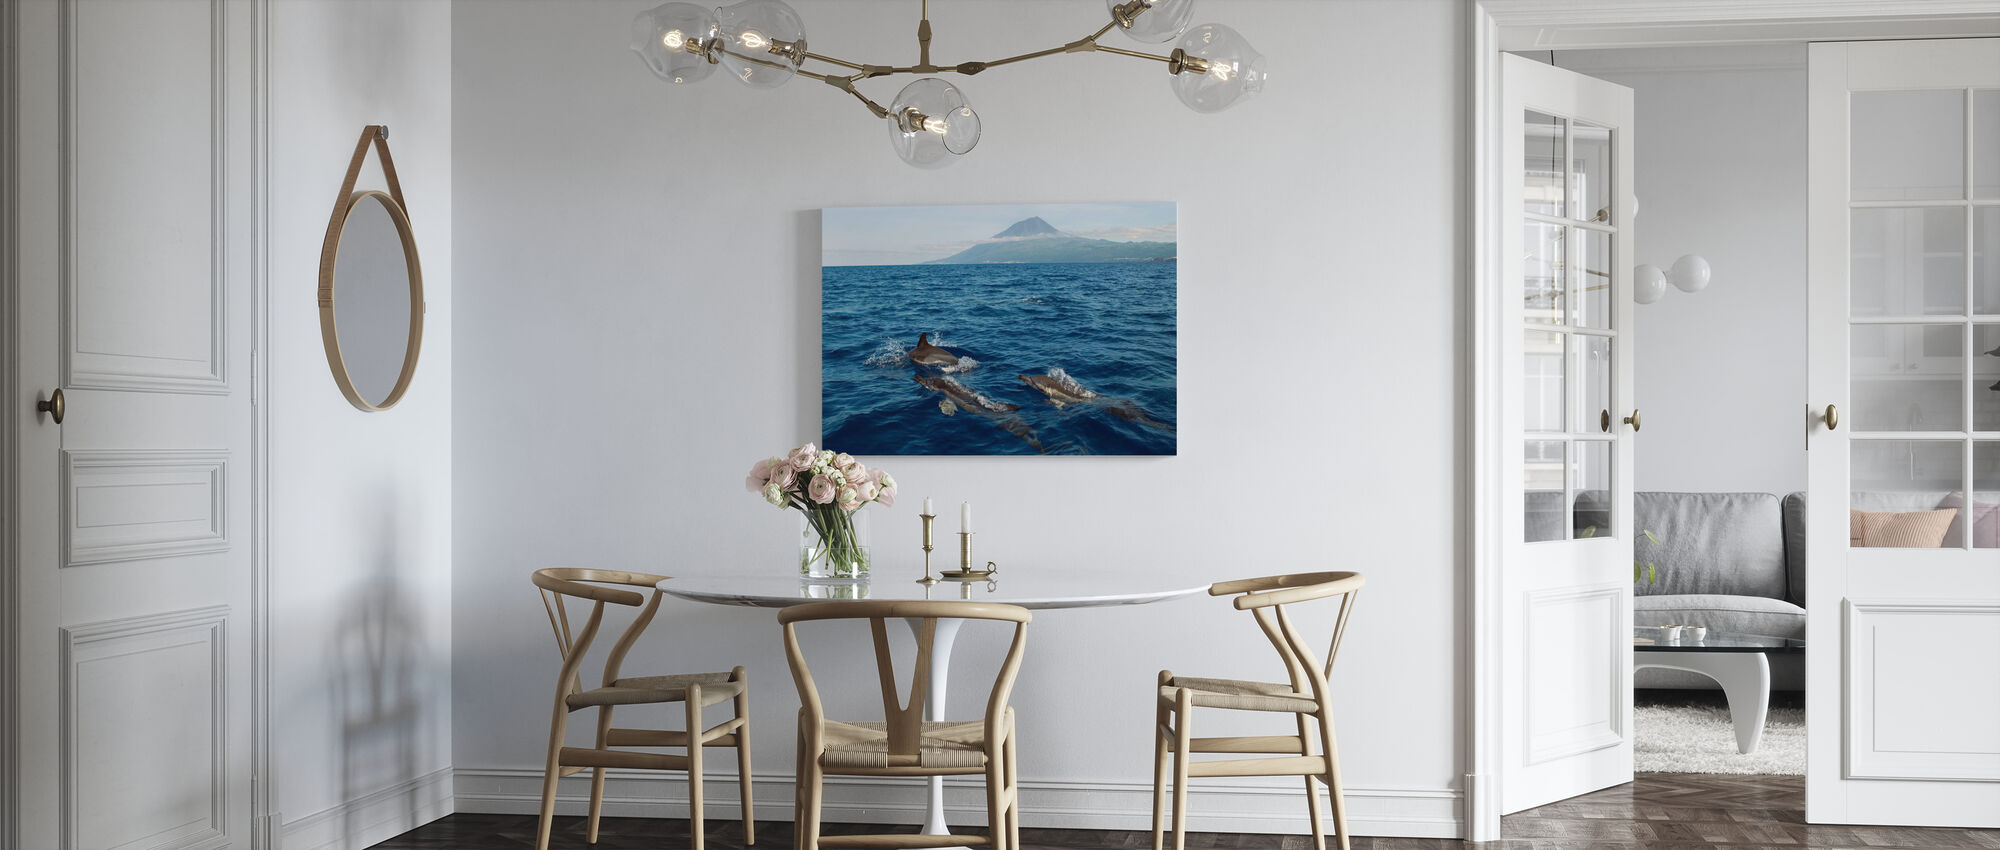 Dolphins in the Azores - Canvas print - Kitchen